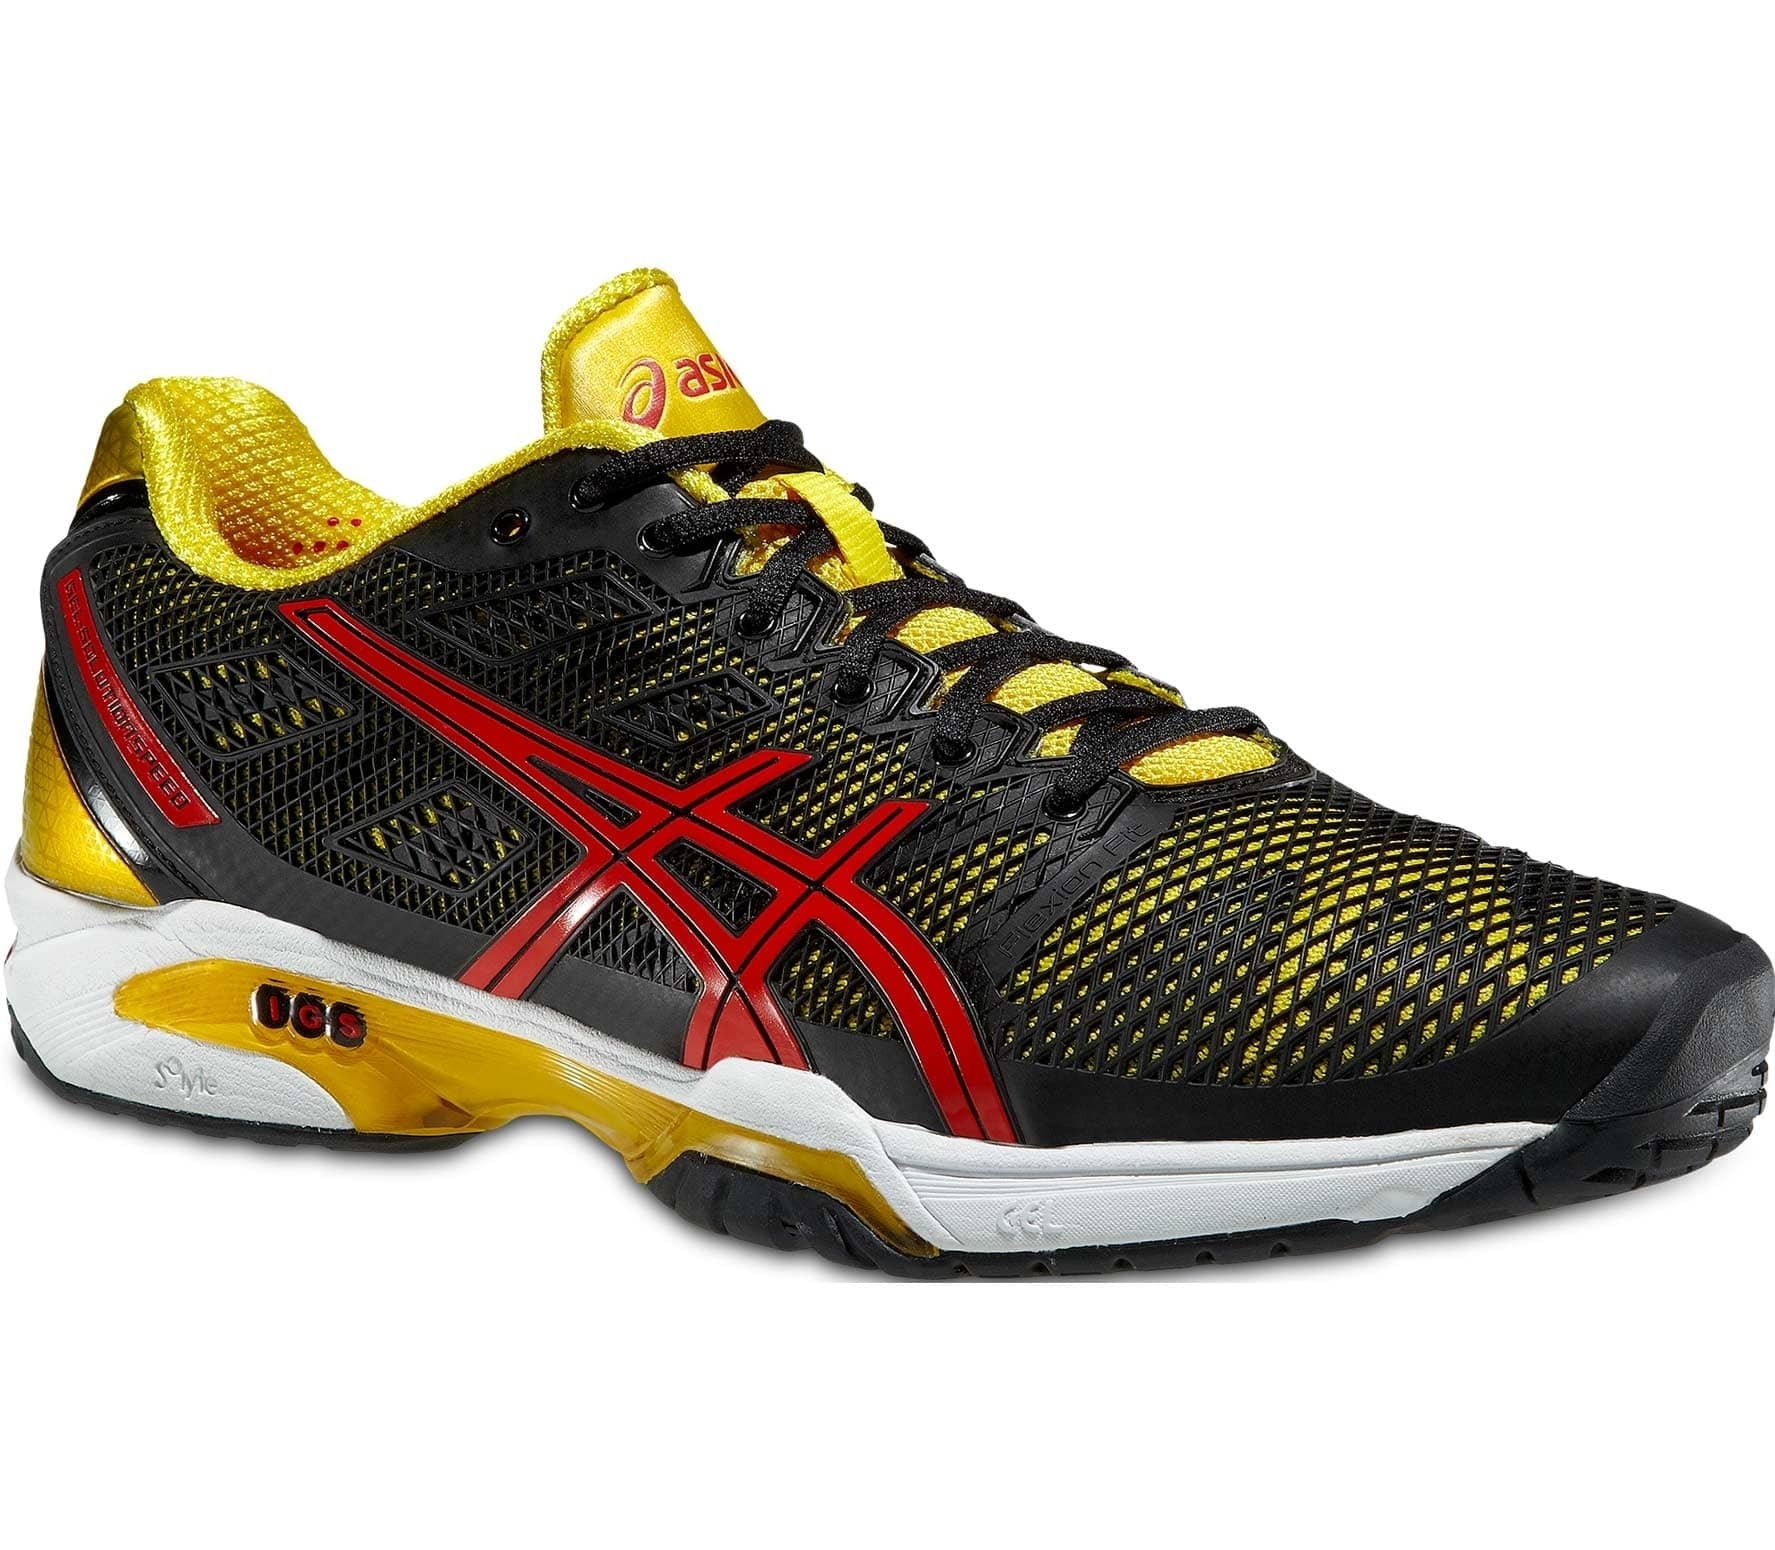 watch 048f4 7e922 Asics - Gel-Solution Speed 2 men s tennis shoes (black yellow)